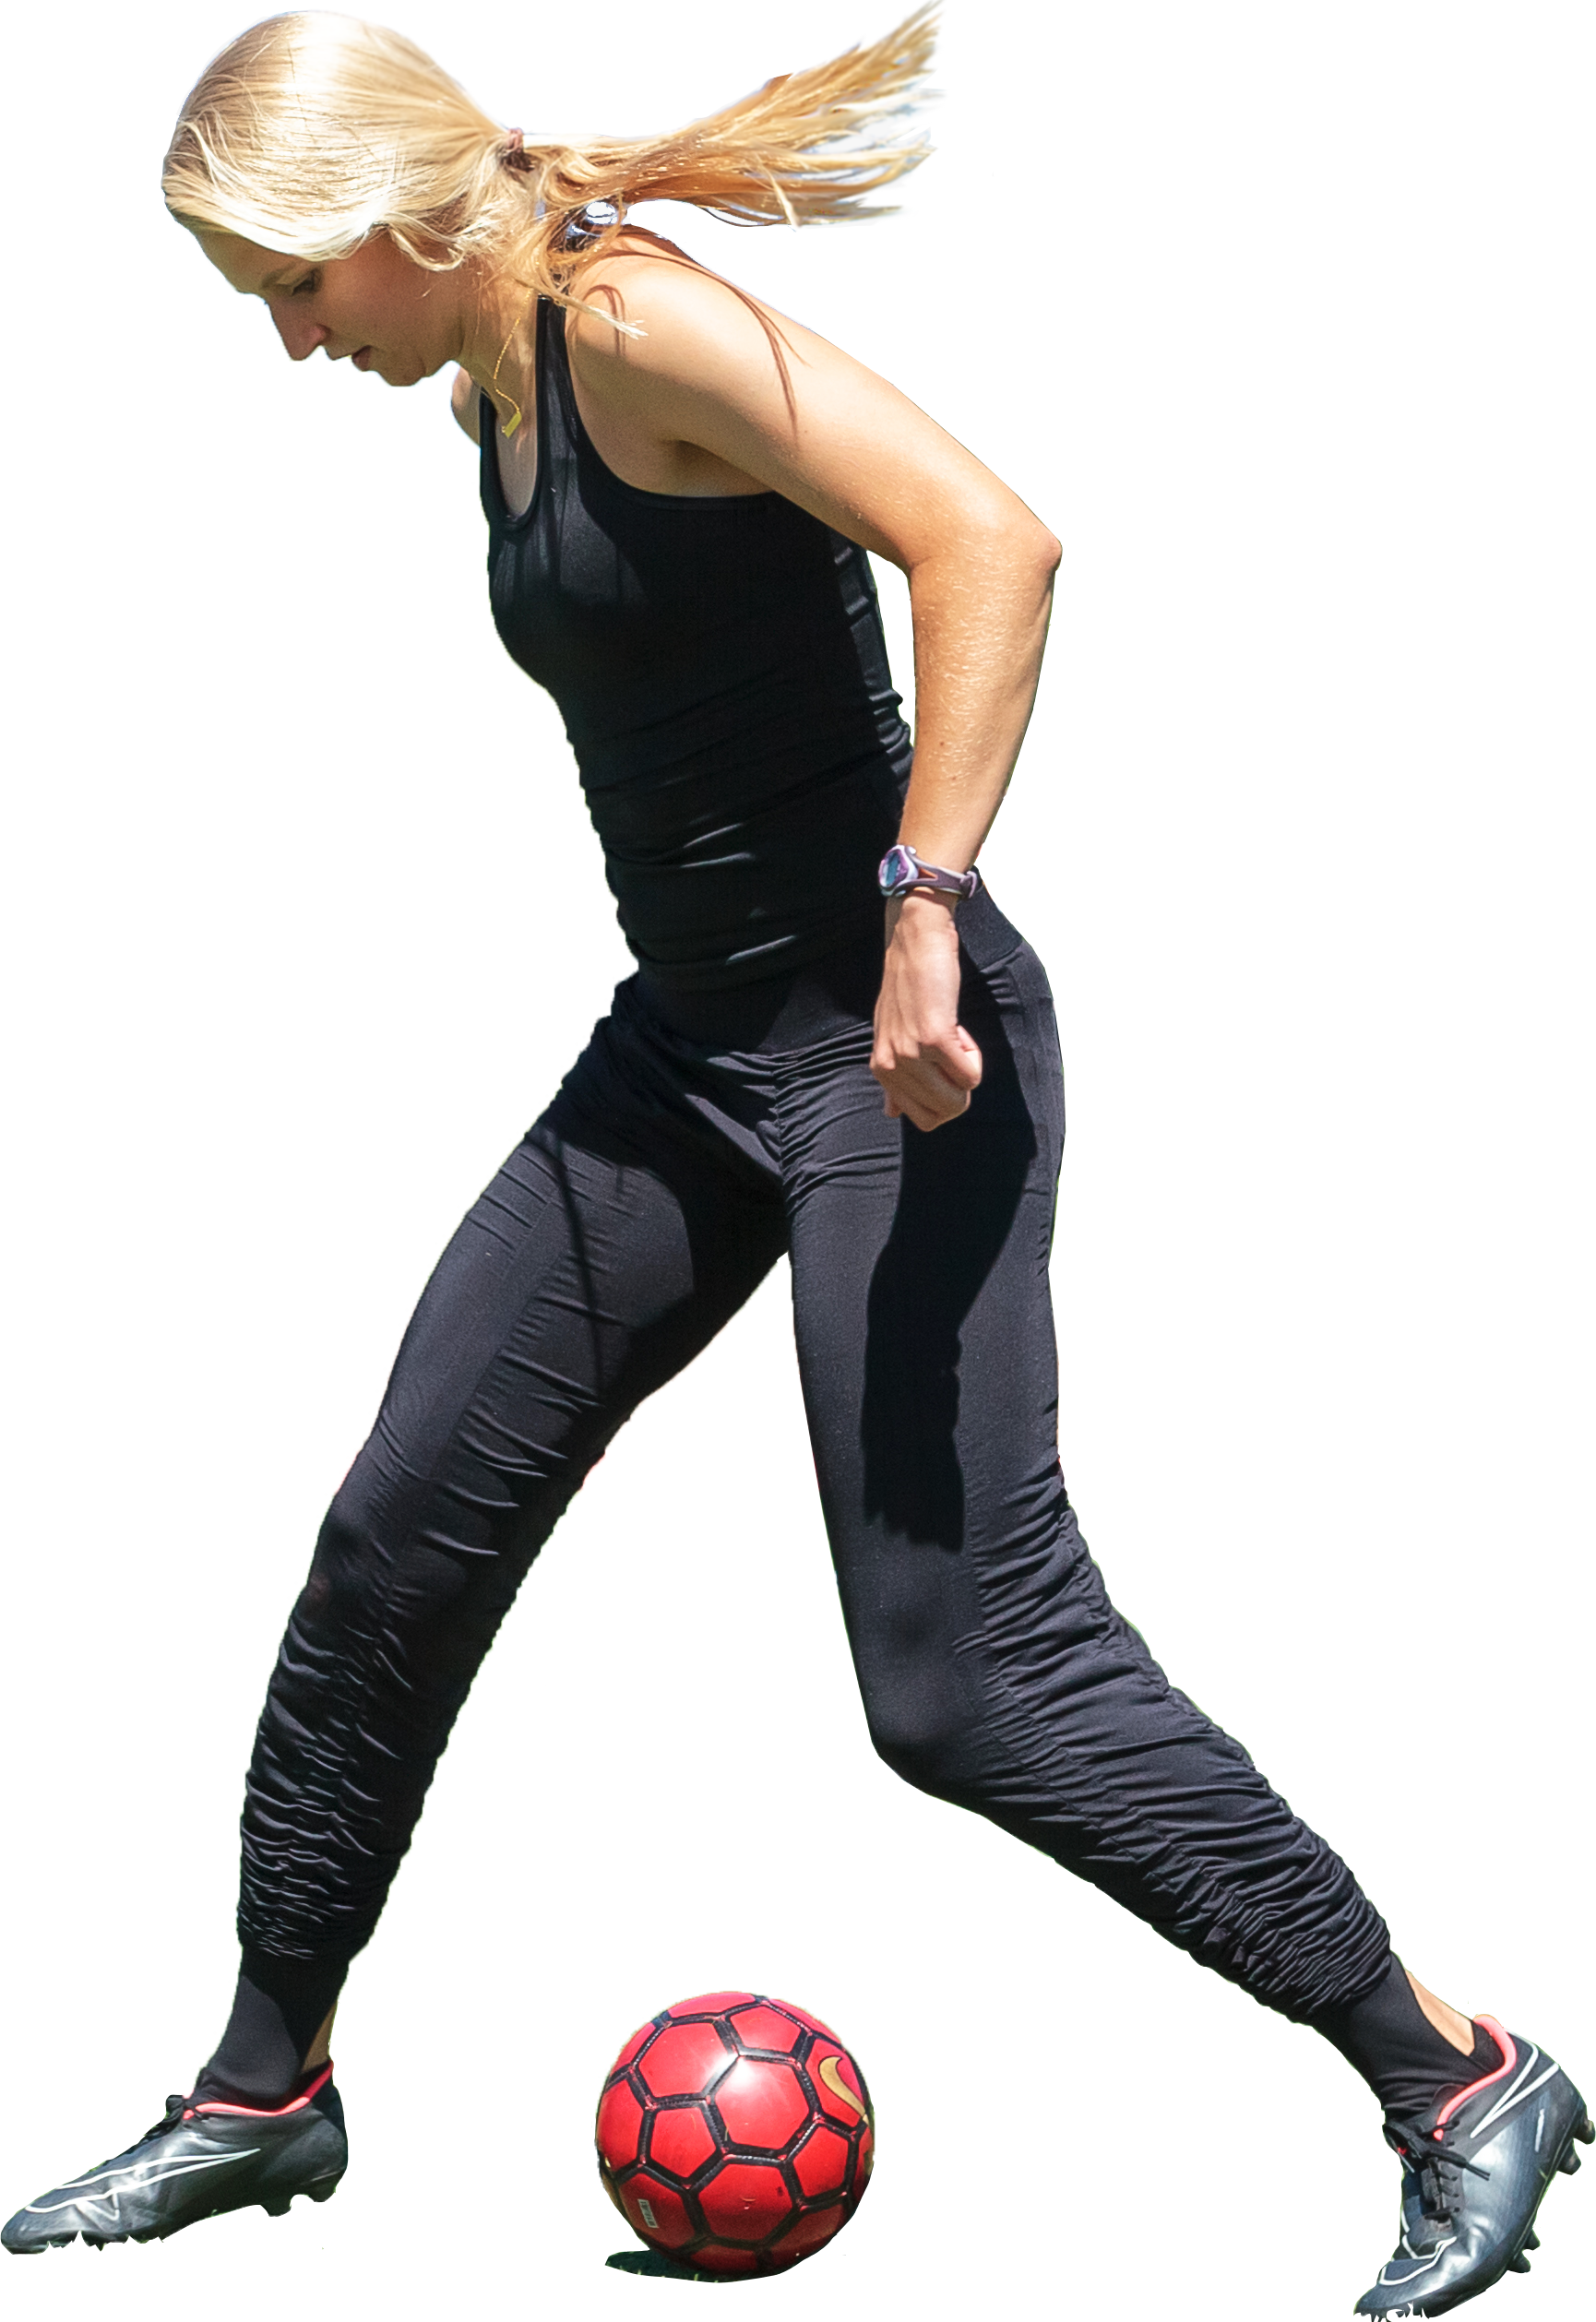 Playing soccer with AGOGIE wearable resistance training tights allow you to practice under resistance helping you build muscle where you need it.